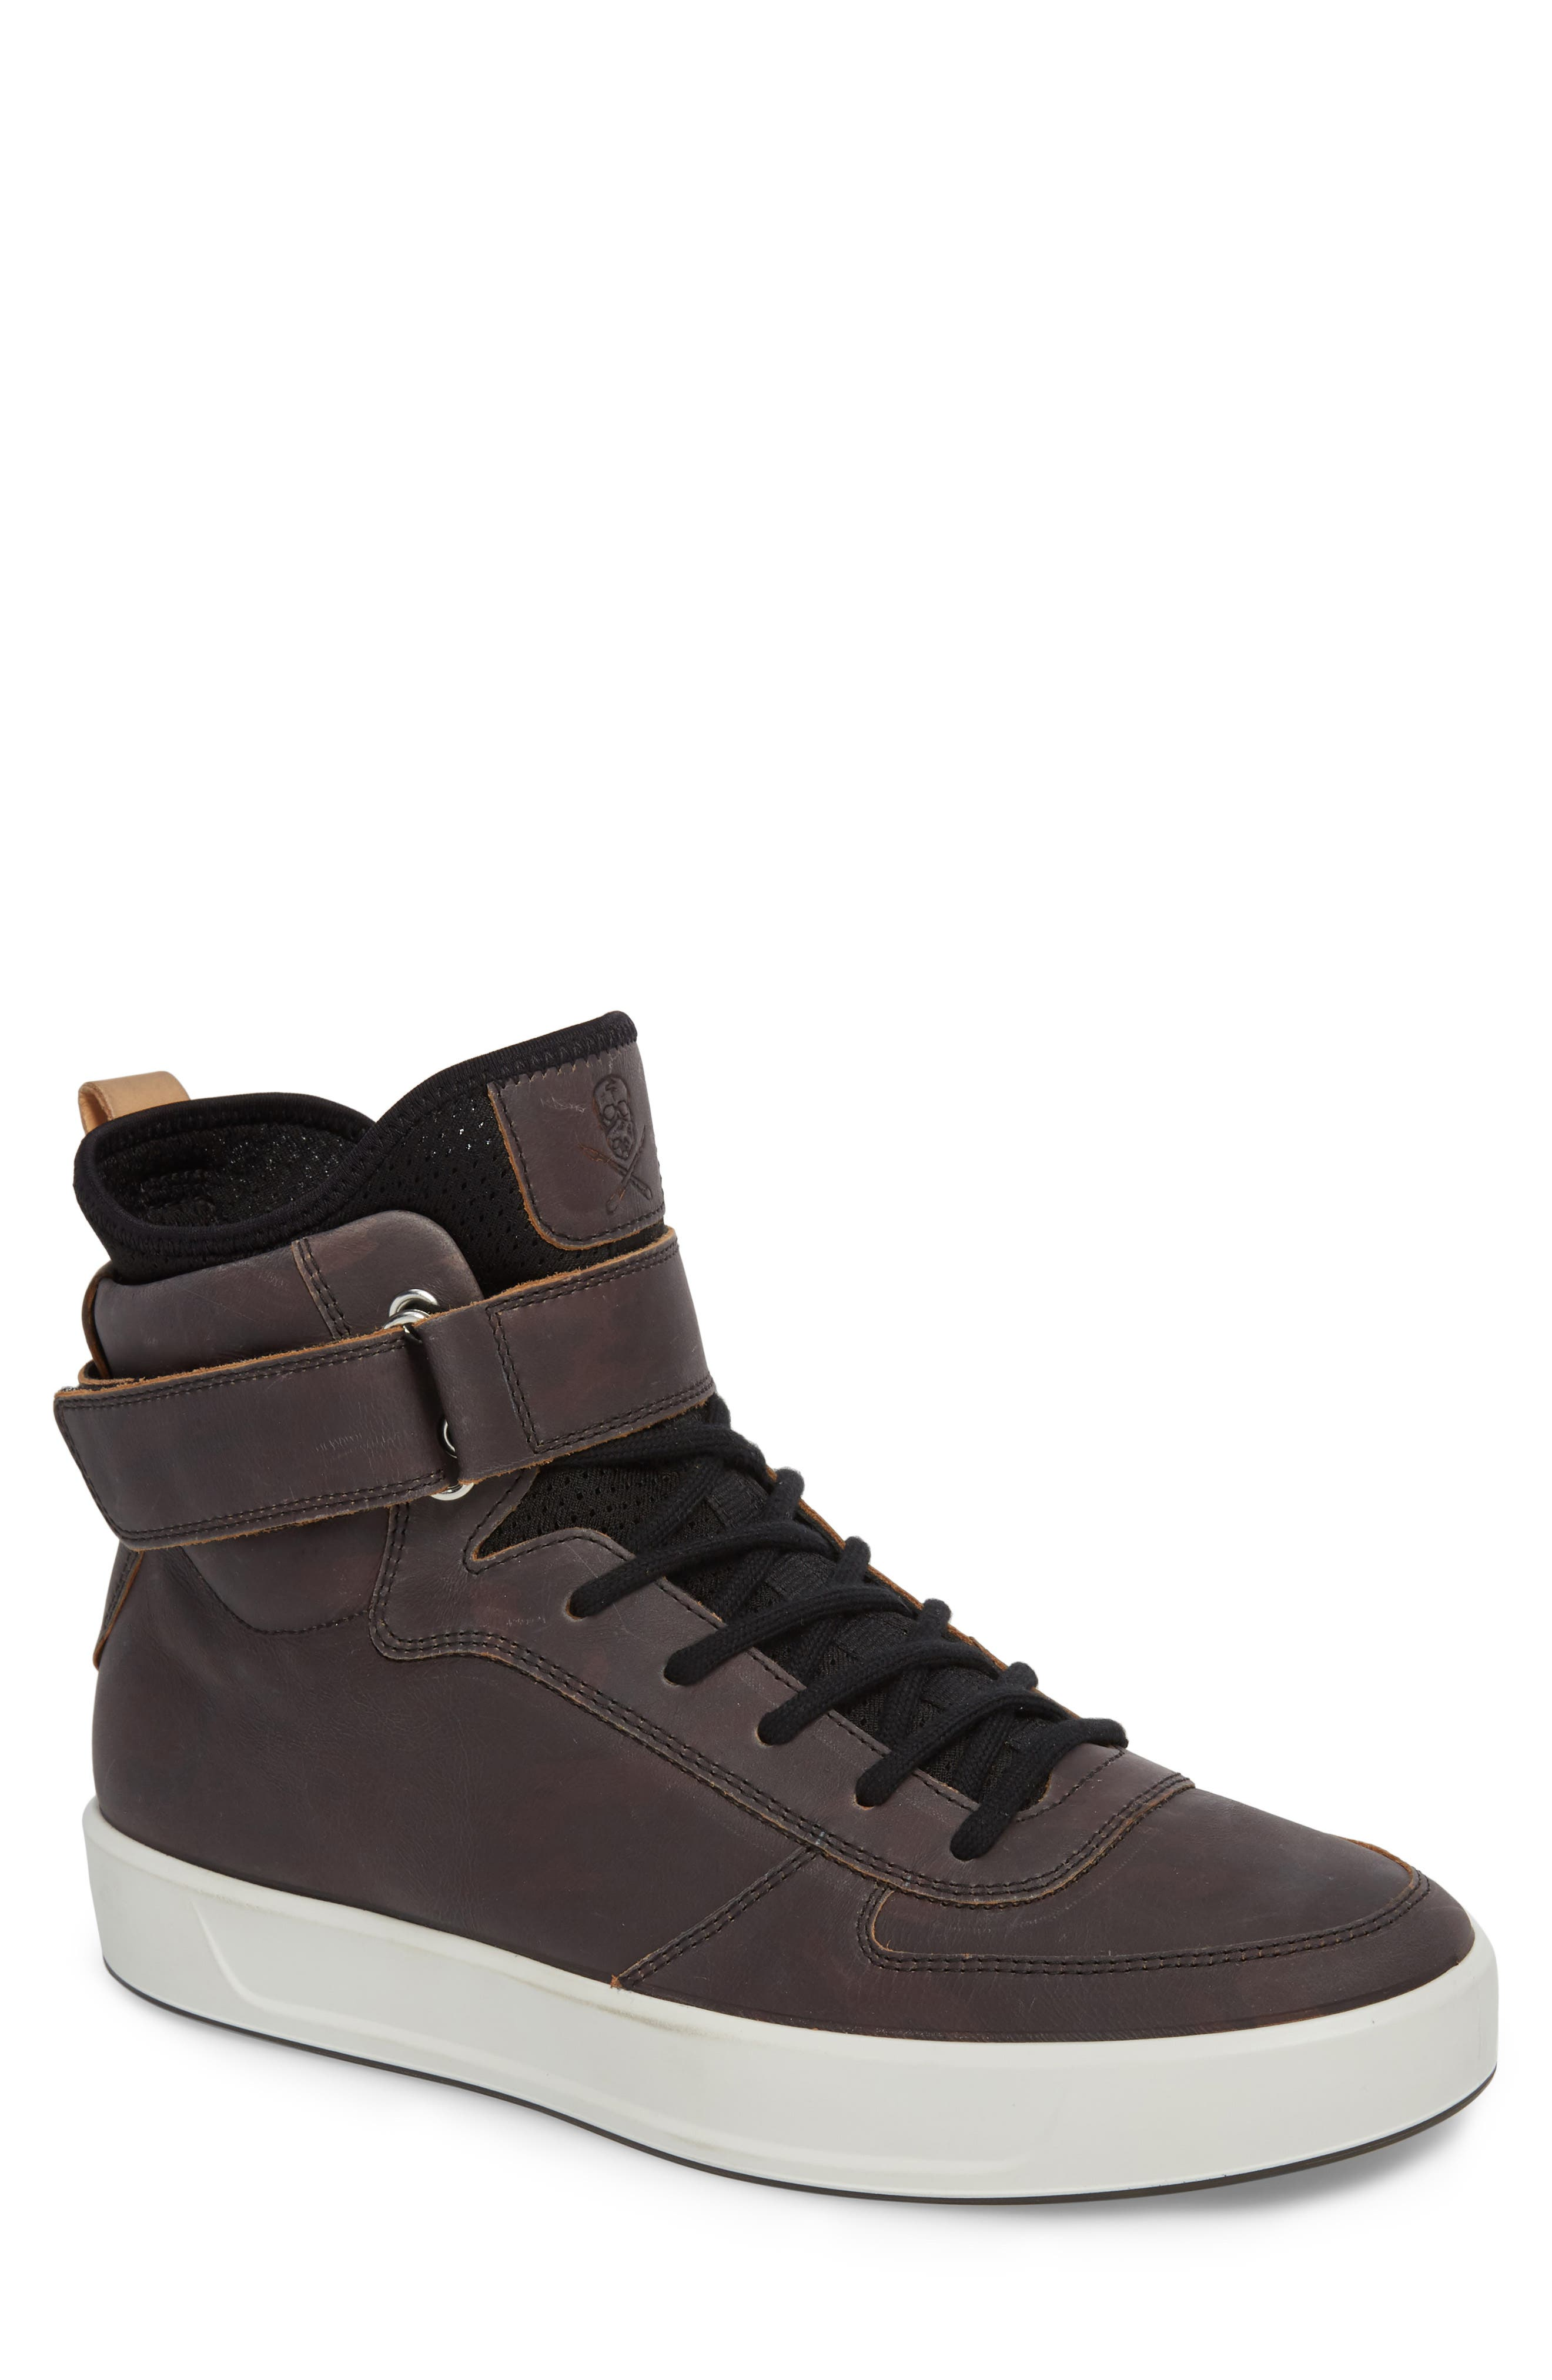 Soft 8 Color Changing Sneaker Boot,                             Main thumbnail 1, color,                             Black/ Camouflage Leather